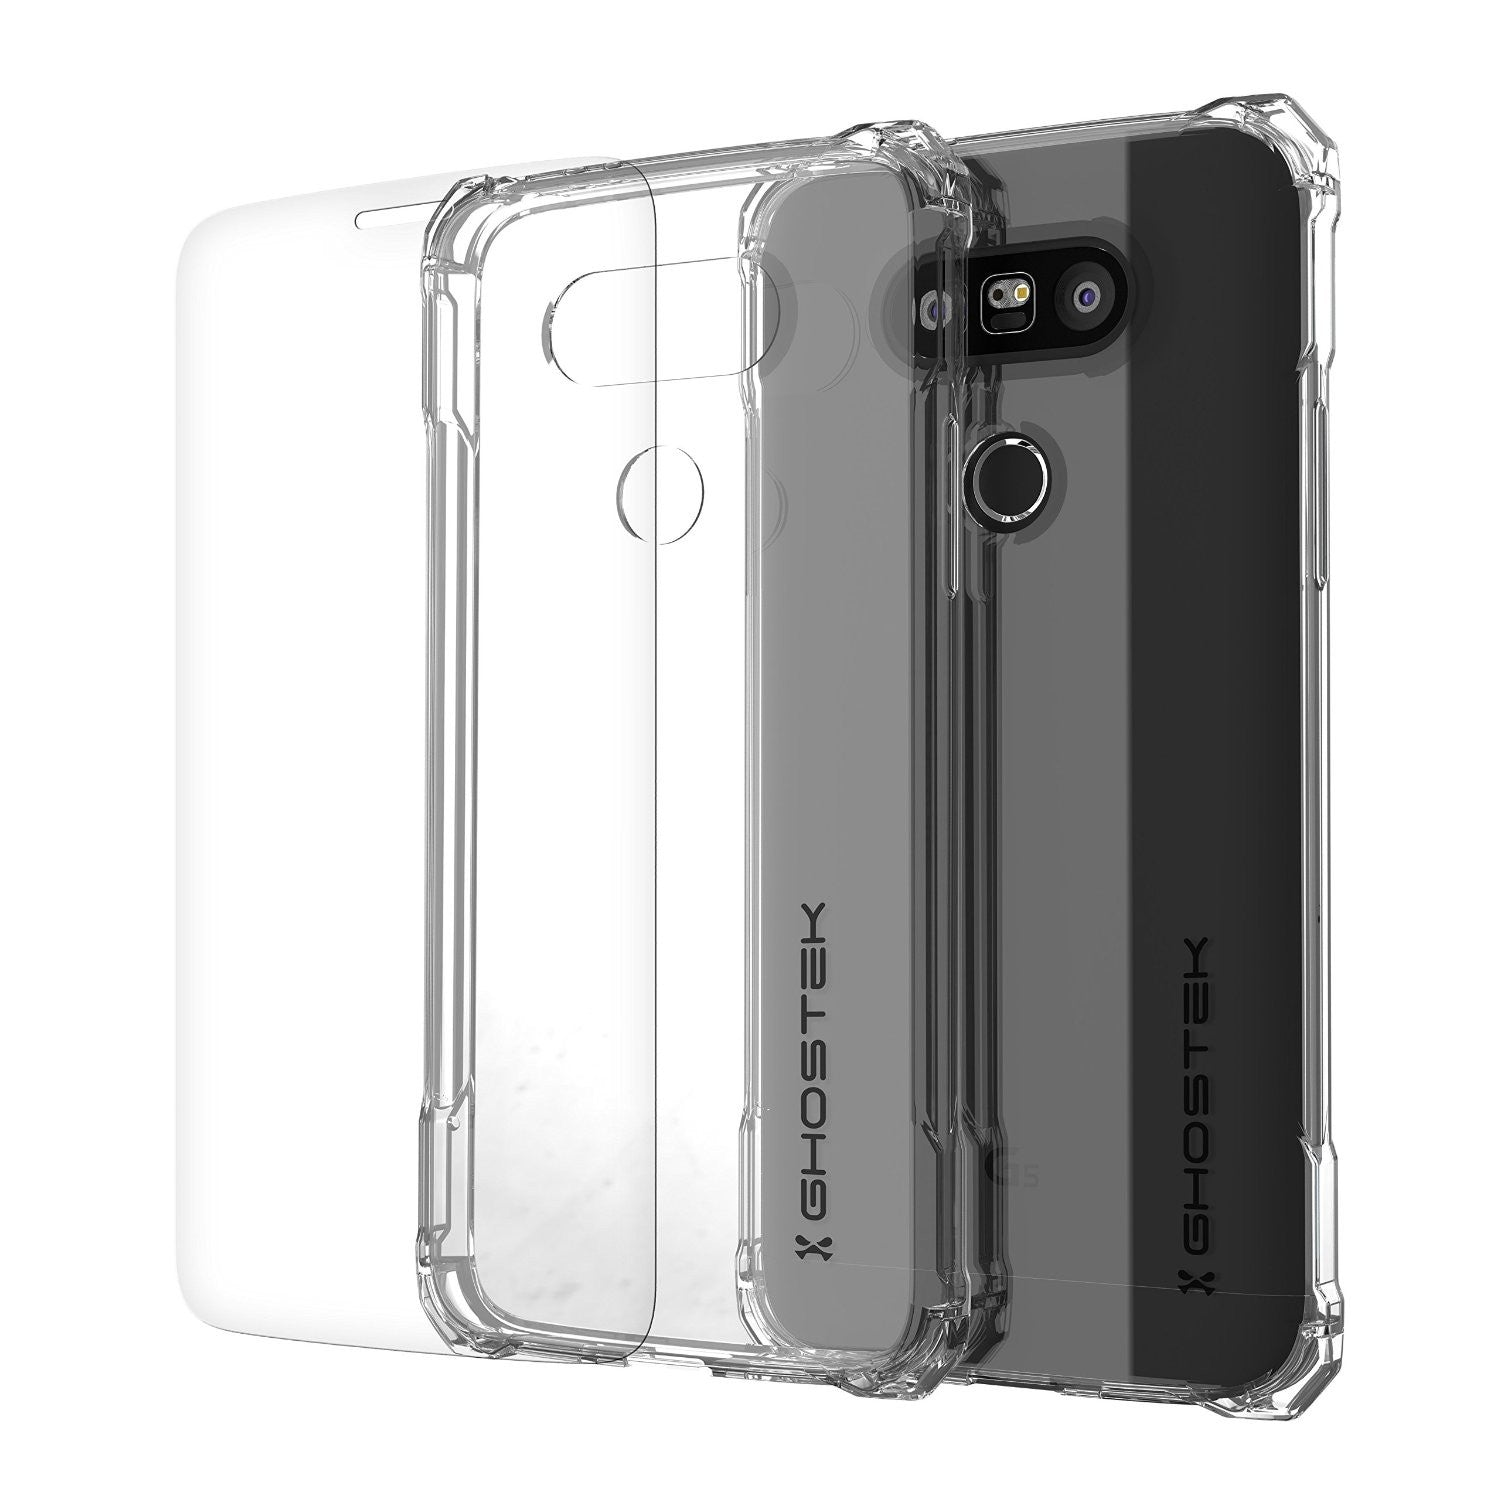 LG G5 Case, Ghostek® Clear Covert Premium Slim Hybrid Protective Cover | Lifetime Warranty Exchange